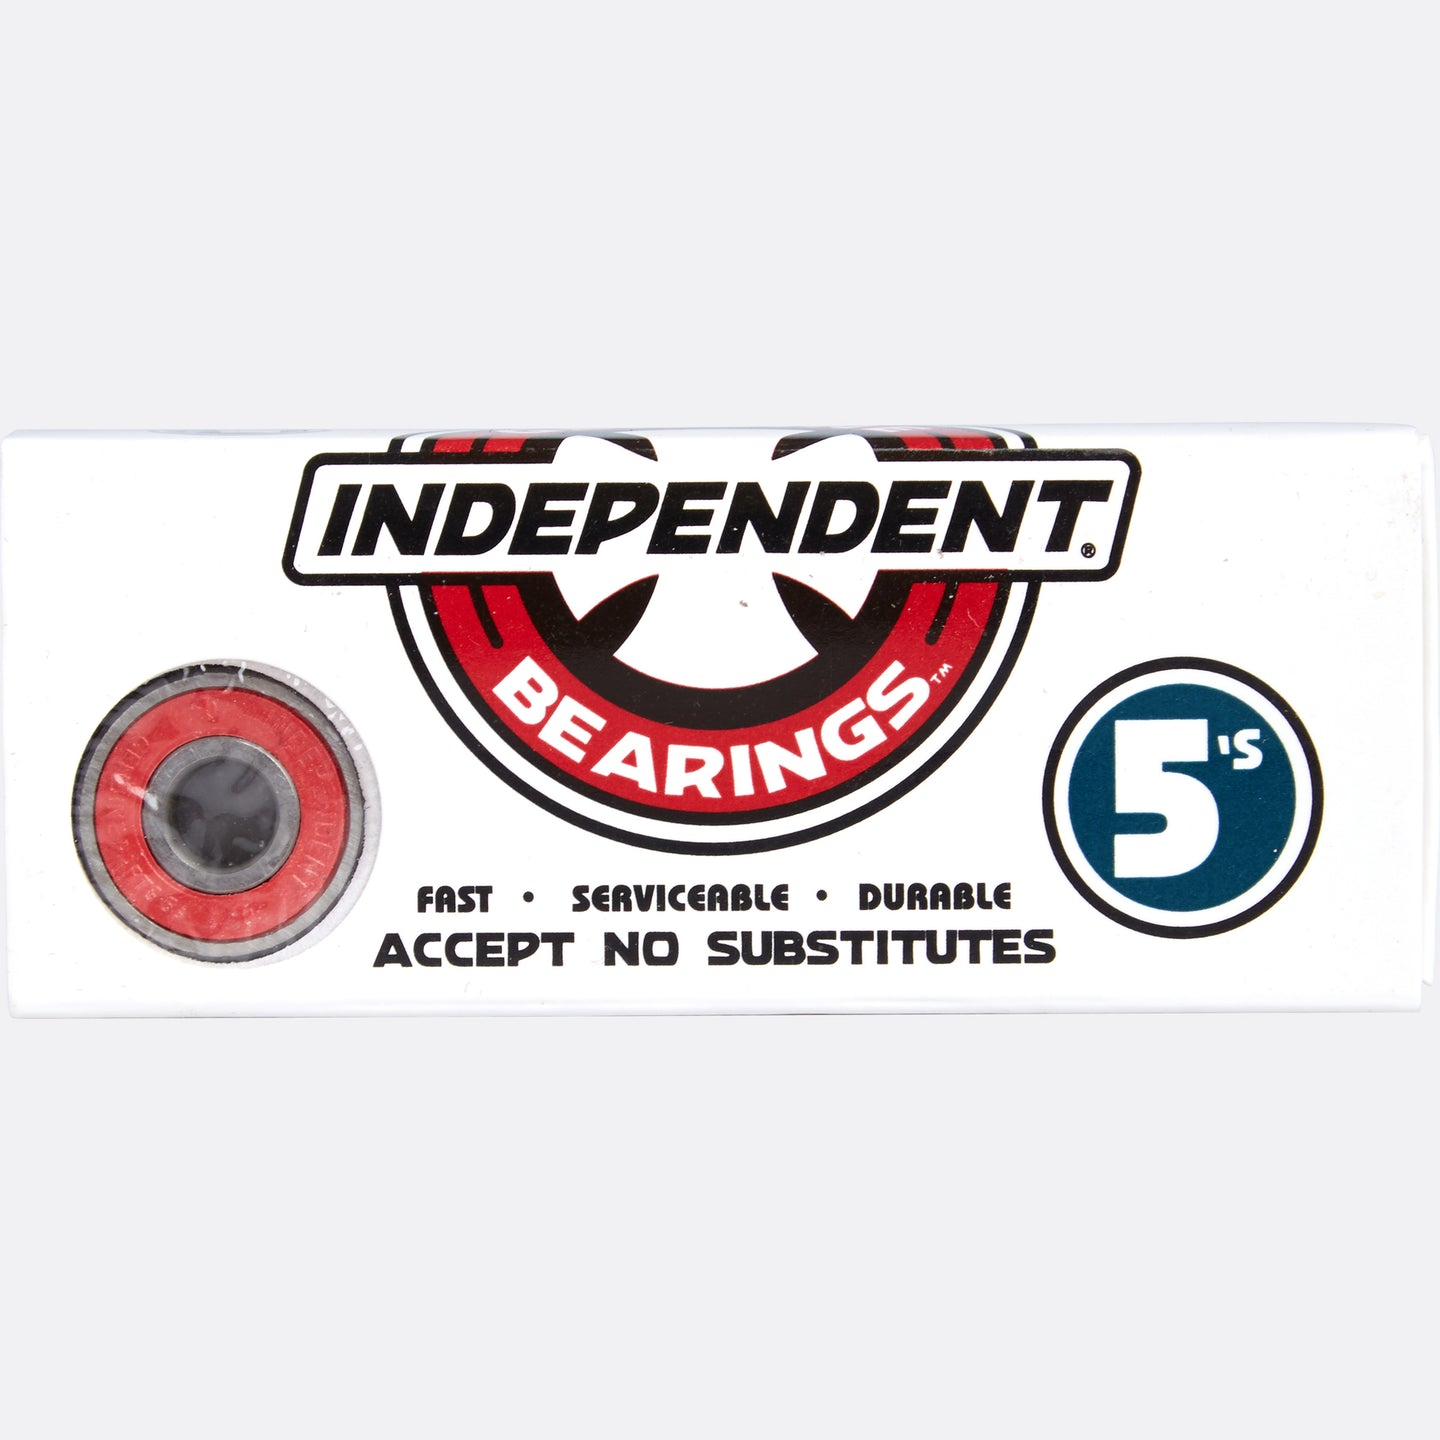 Independent Abec 5 Bearings